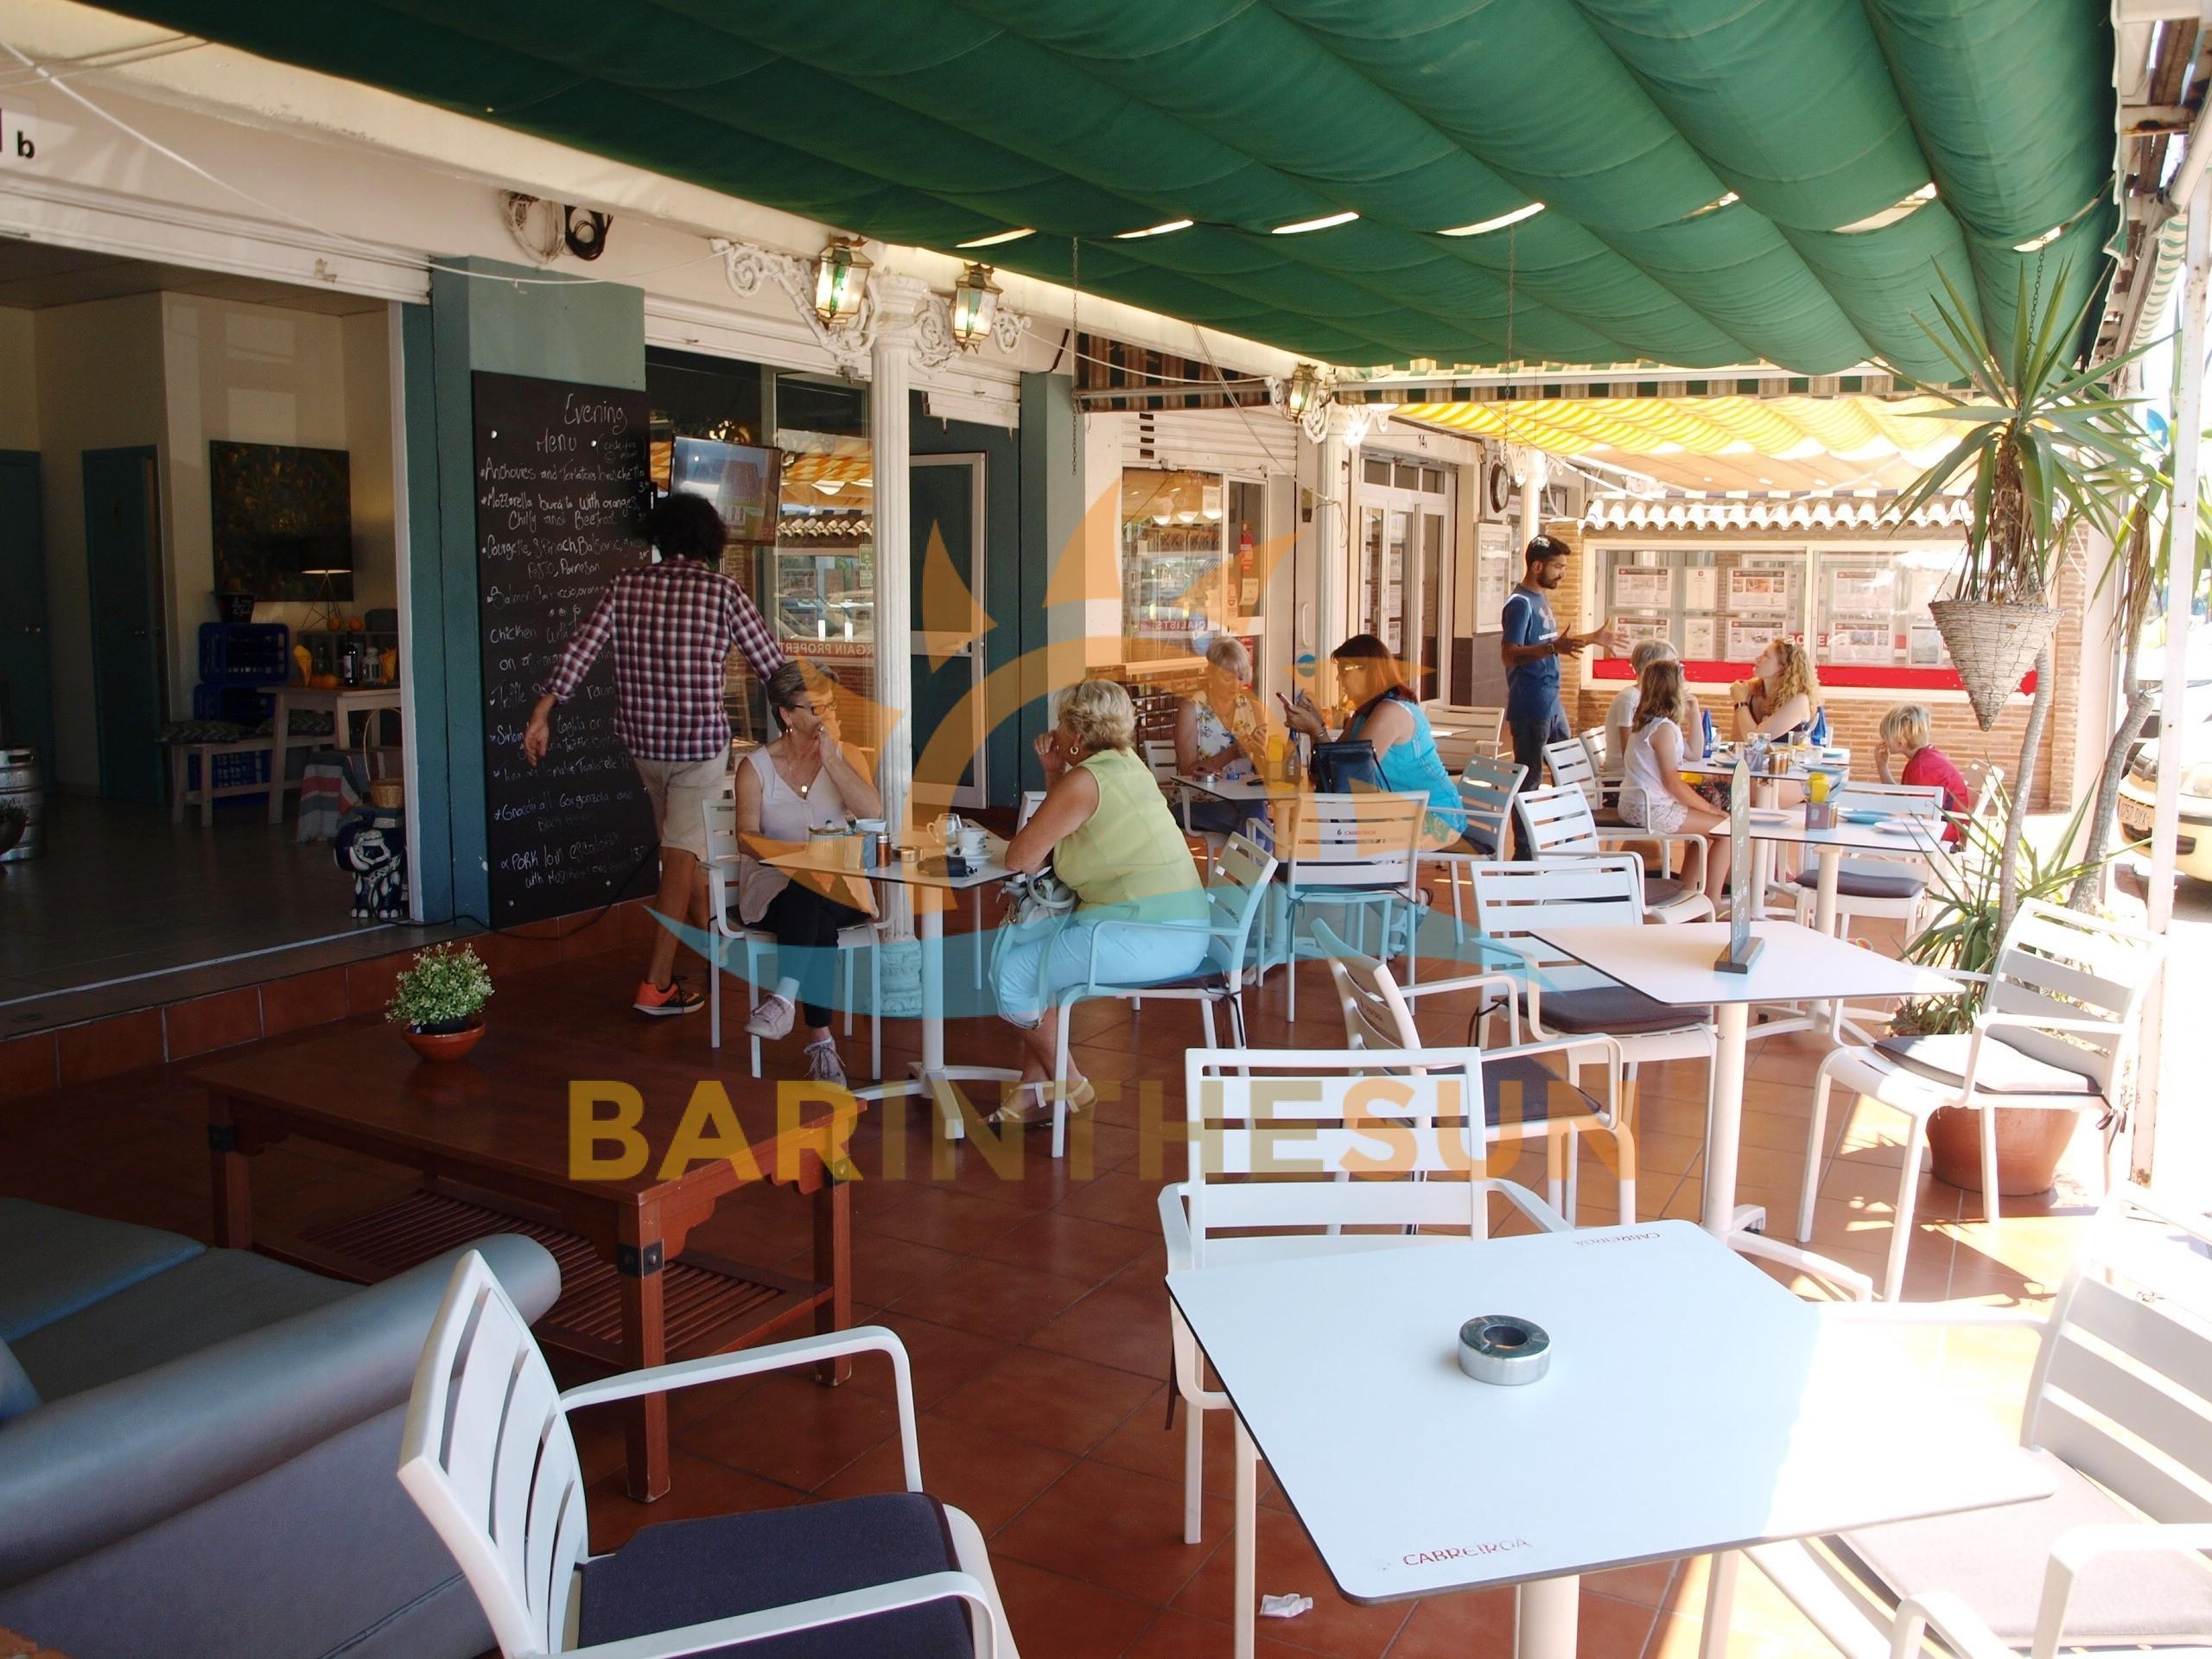 Cafe Bars in Mijas Costa For Sale, Costa Del Sol Cafe Bars For Sale